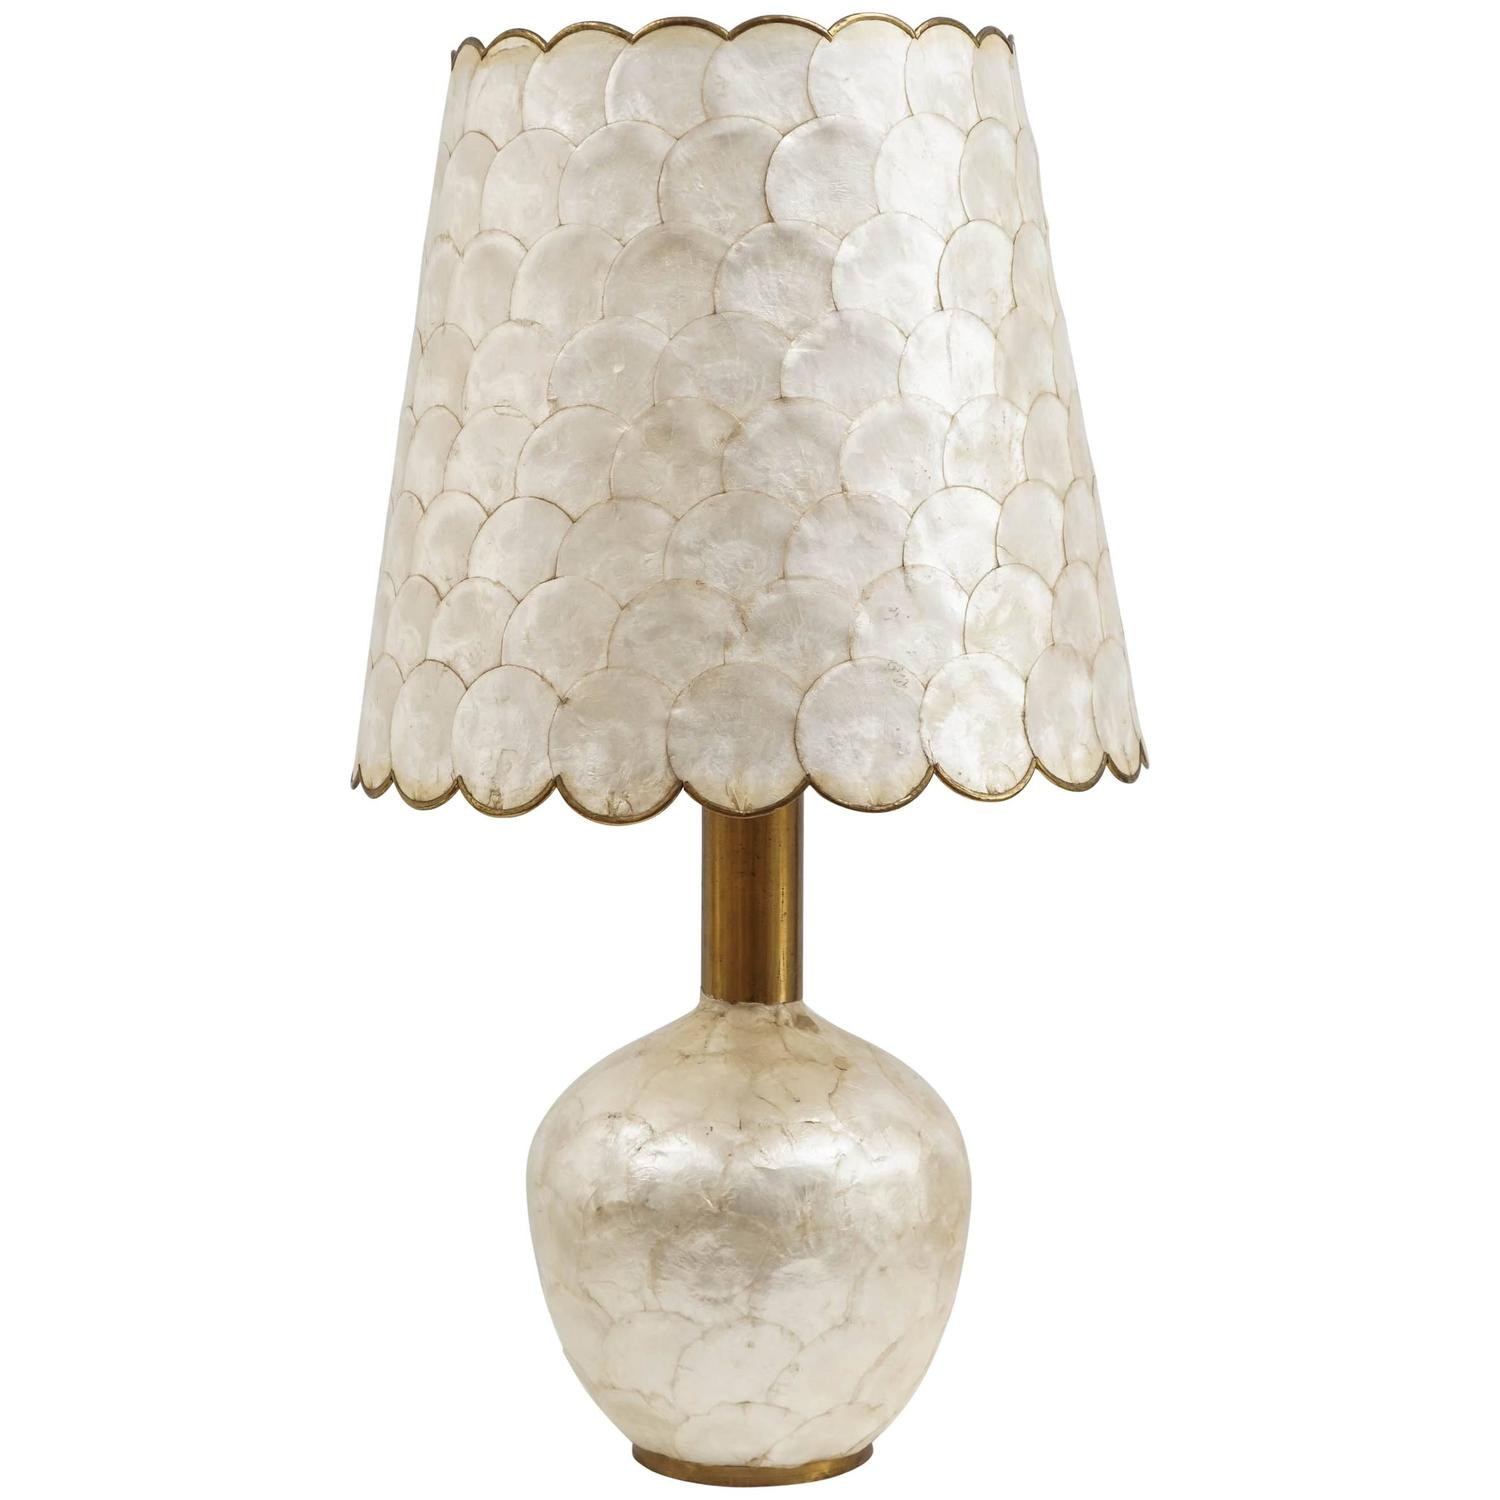 Fabulous capiz shells wall mirror gold with light capiz shells for your home lighting ideas